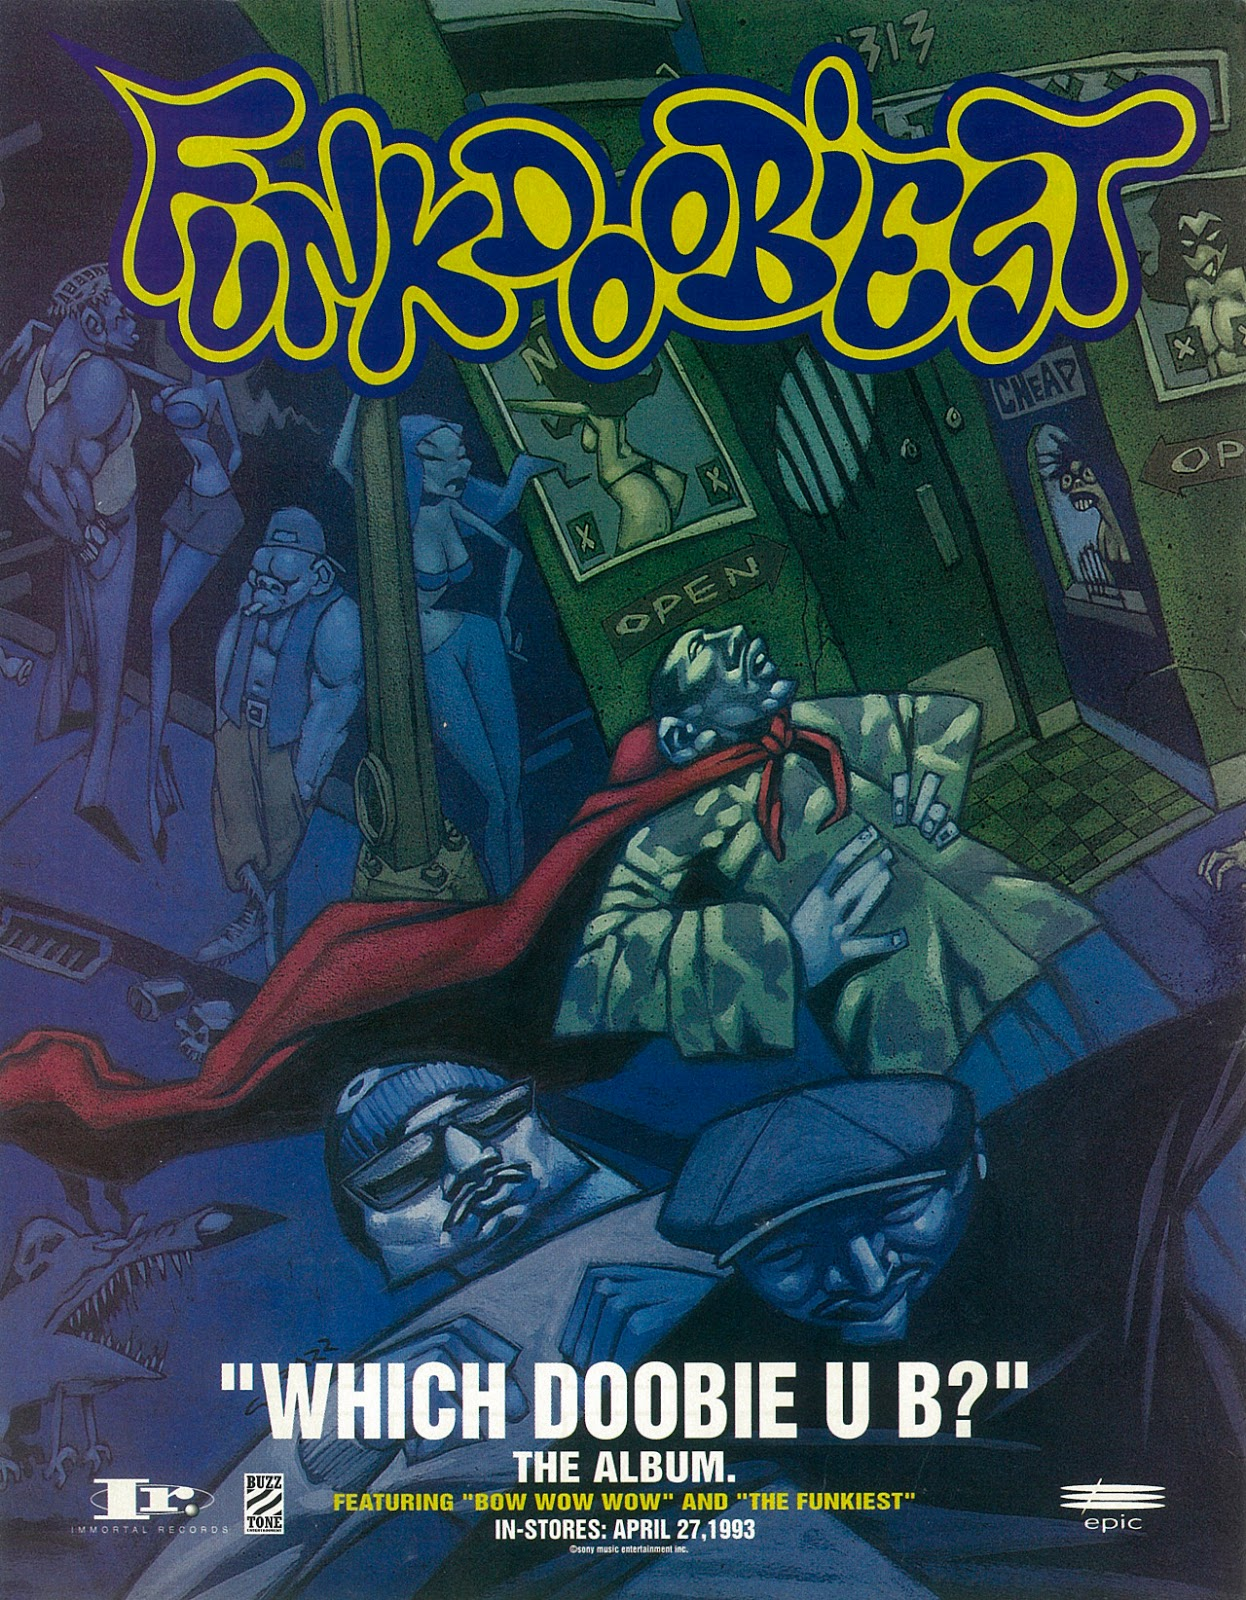 Funkdoobiest 'Which Doobie U B?' (May 4, 1993) Advertisement